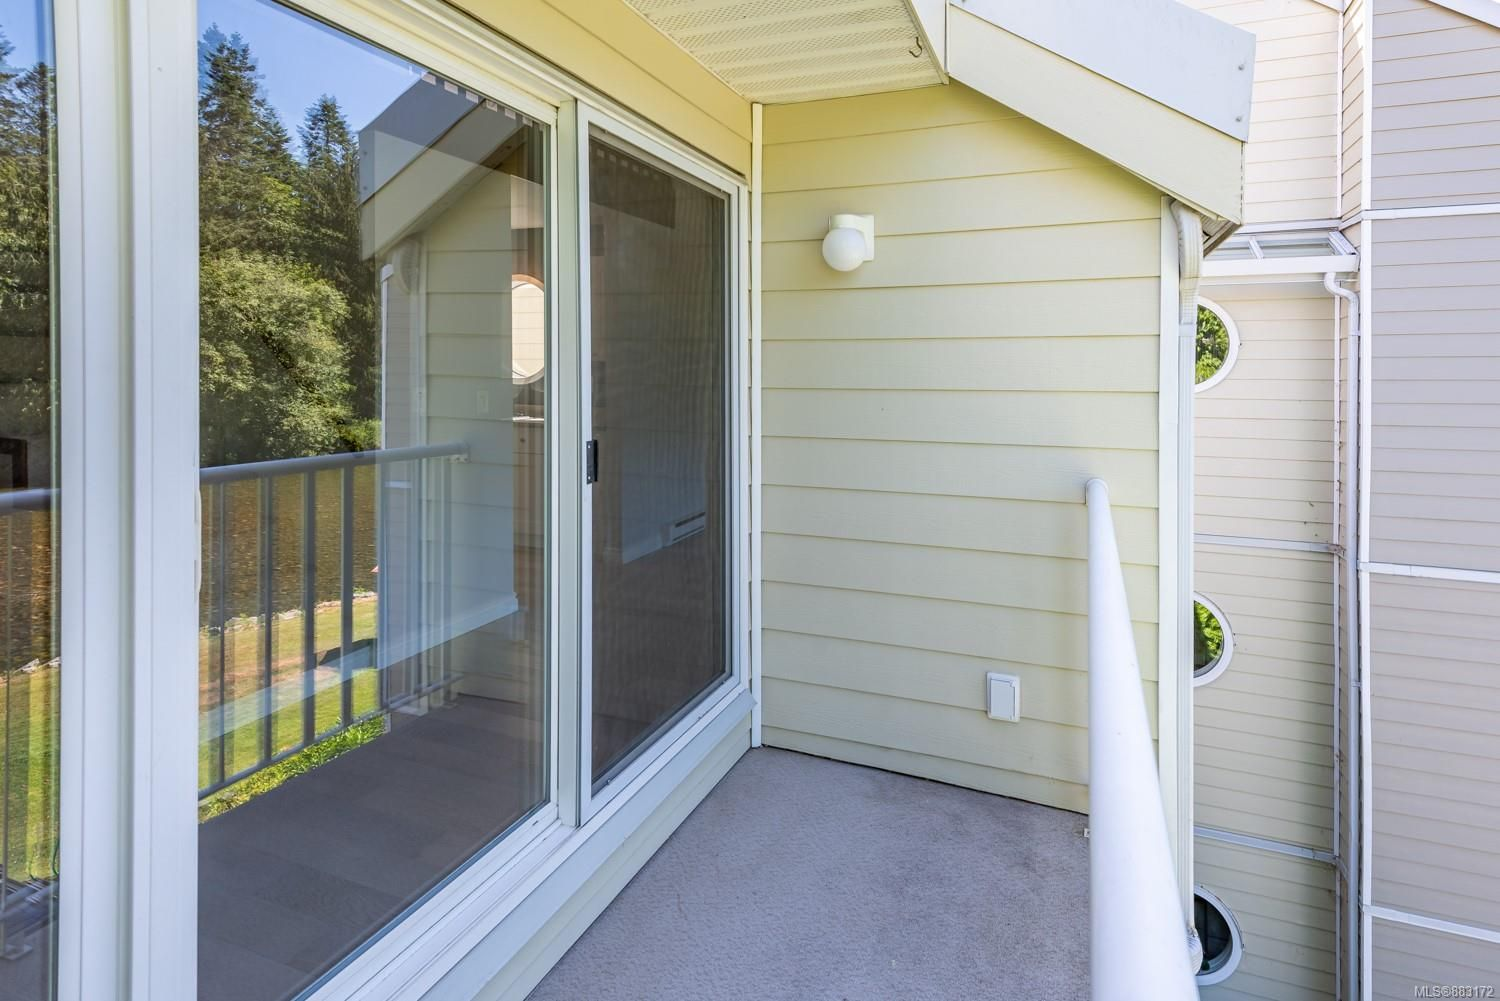 Photo 11: Photos: 303 205 1st St in : CV Courtenay City Row/Townhouse for sale (Comox Valley)  : MLS®# 883172